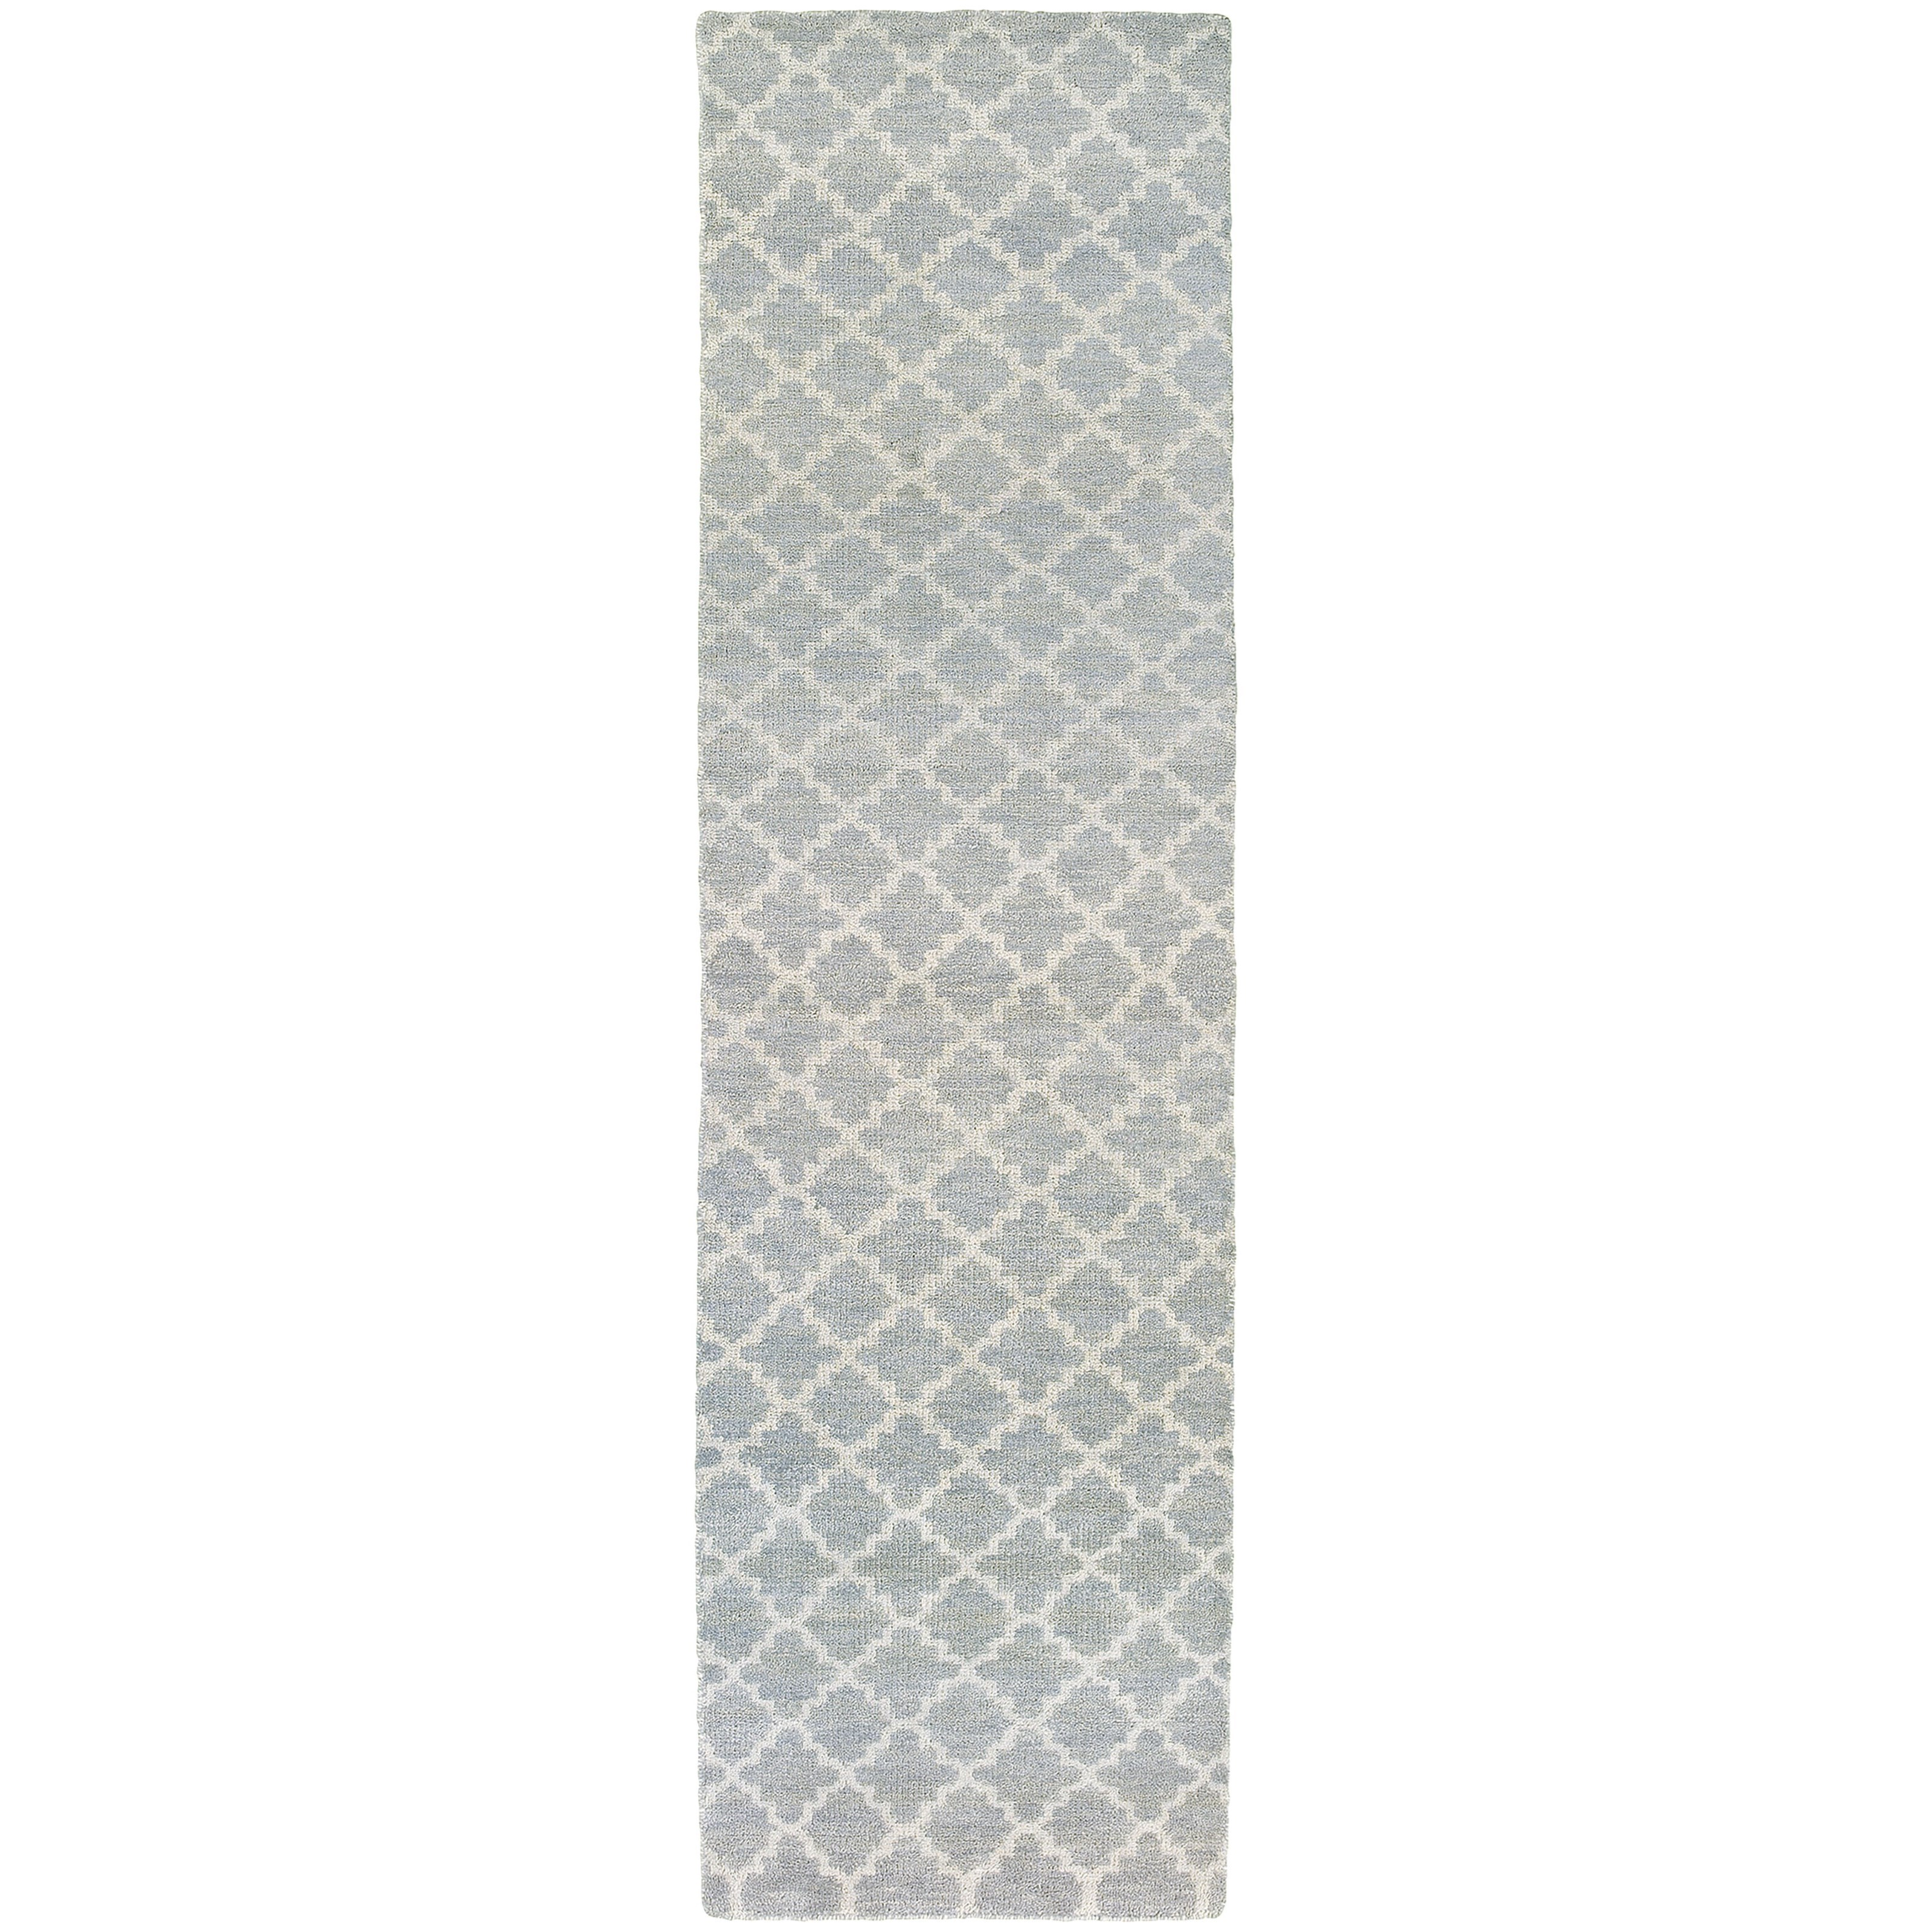 "Maddox 3' 6"" X  5' 6"" Rectangle Rug by Oriental Weavers at Jacksonville Furniture Mart"